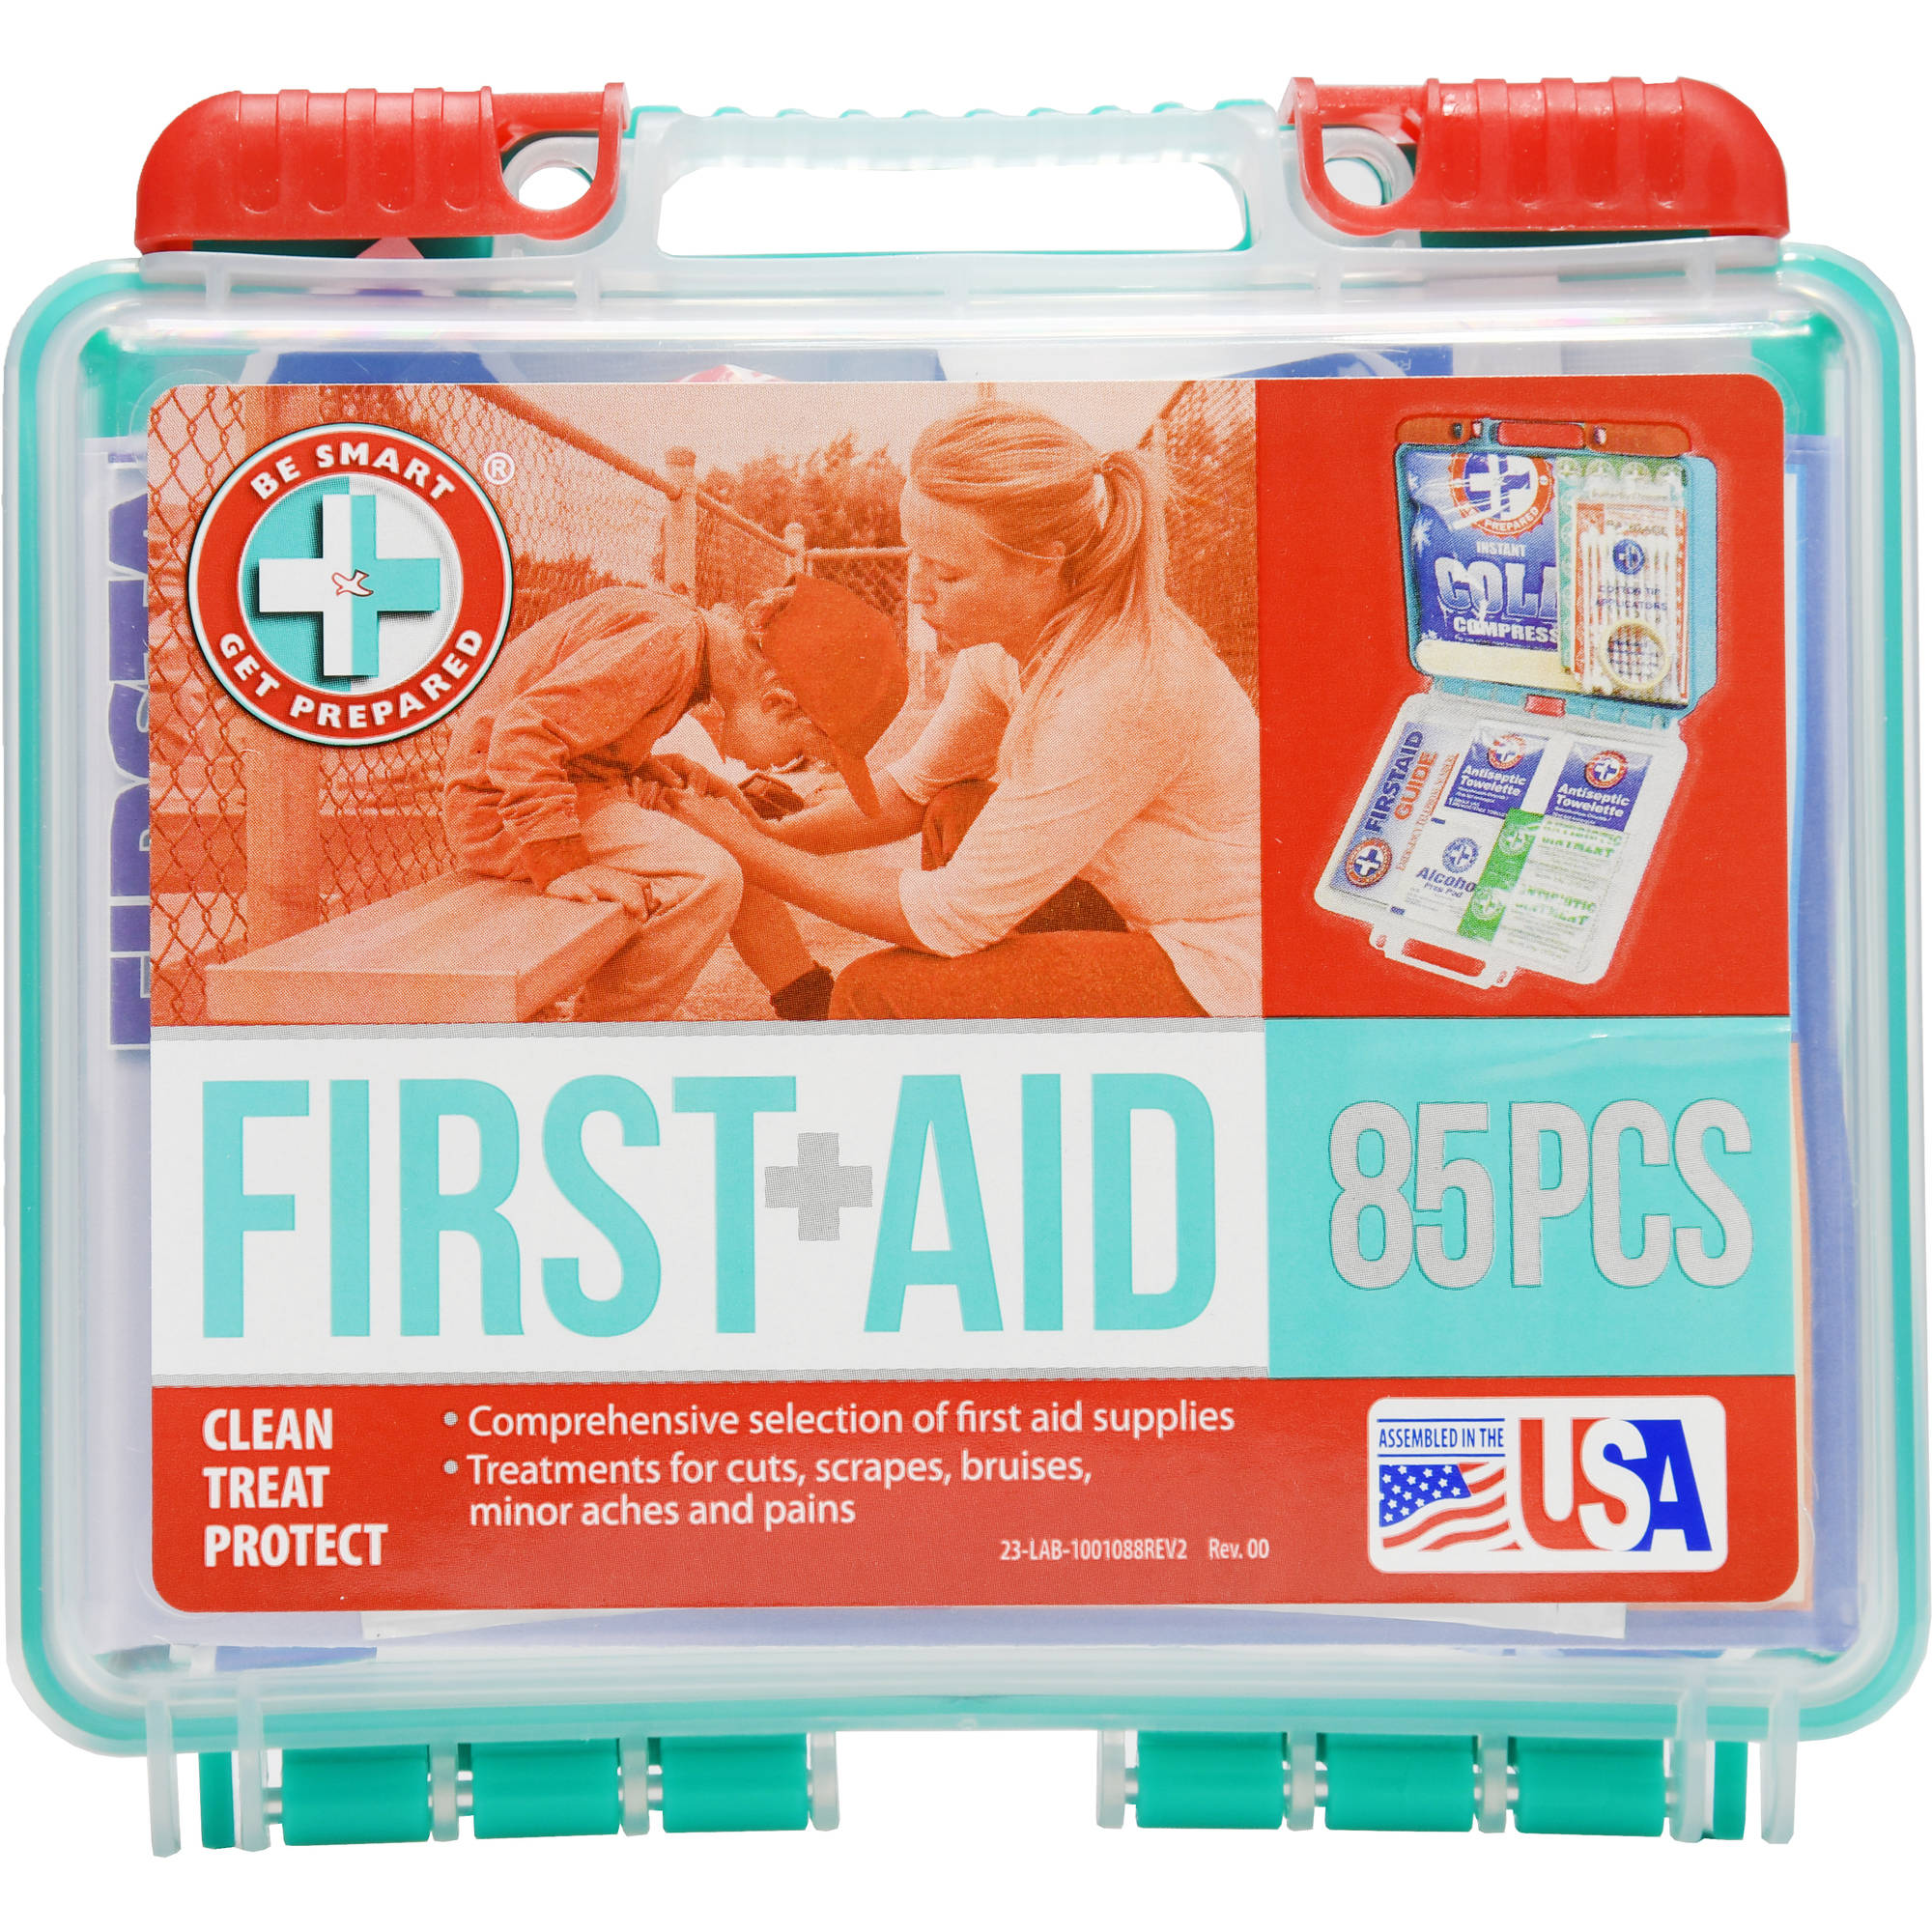 Be Smart Get Prepared First Aid Kit, 85 pc by Total Resources International